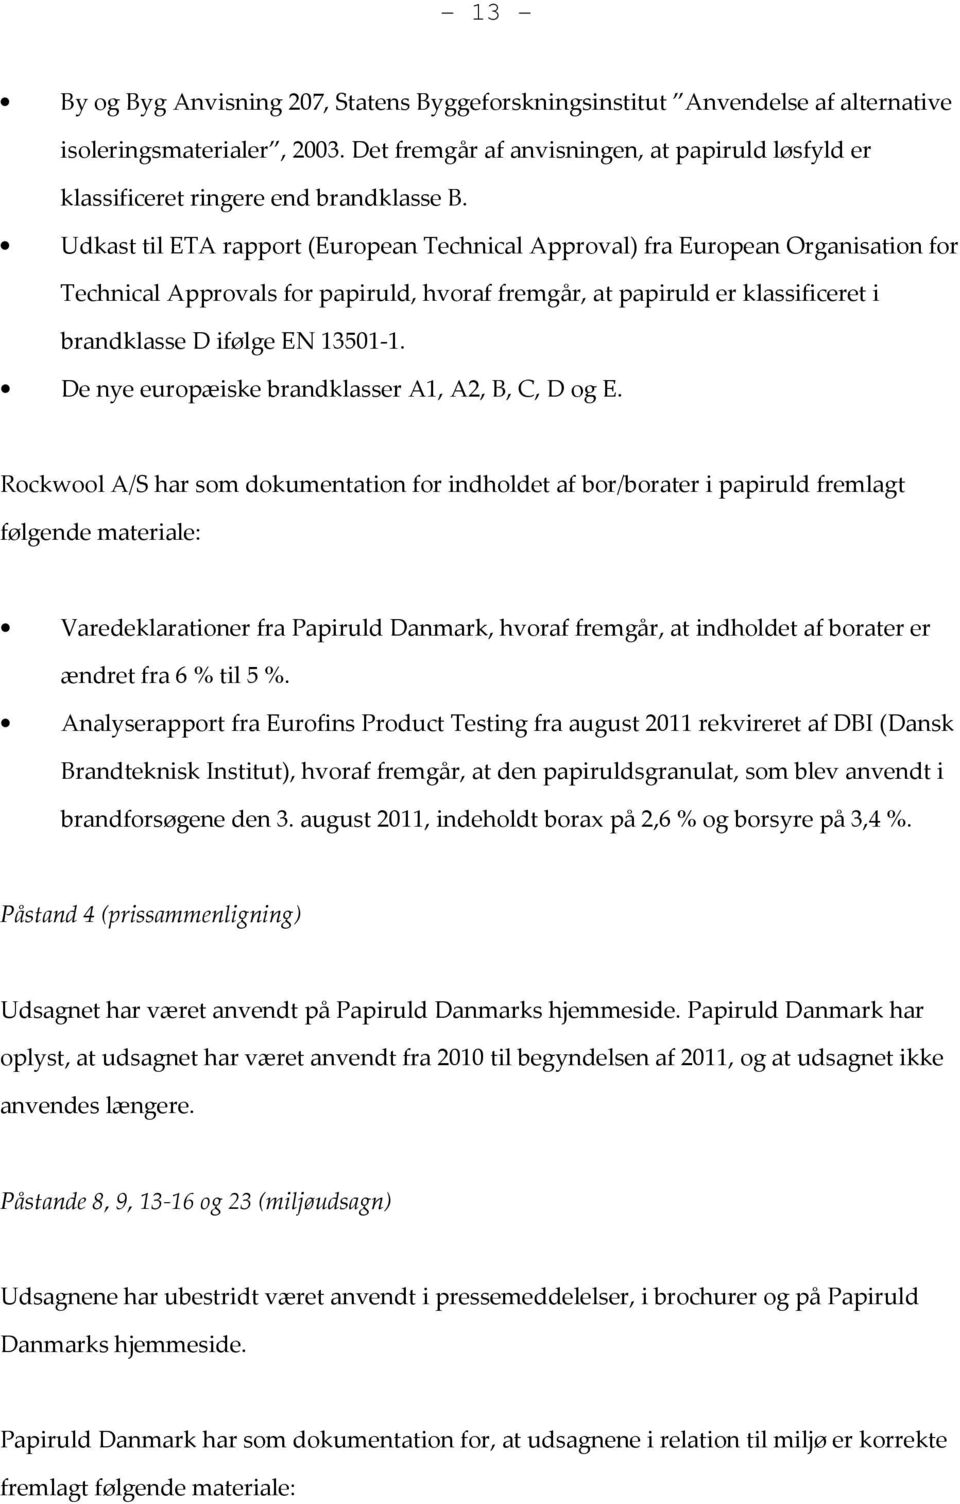 Udkast til ETA rapport (European Technical Approval) fra European Organisation for Technical Approvals for papiruld, hvoraf fremgår, at papiruld er klassificeret i brandklasse D ifølge EN 13501-1.